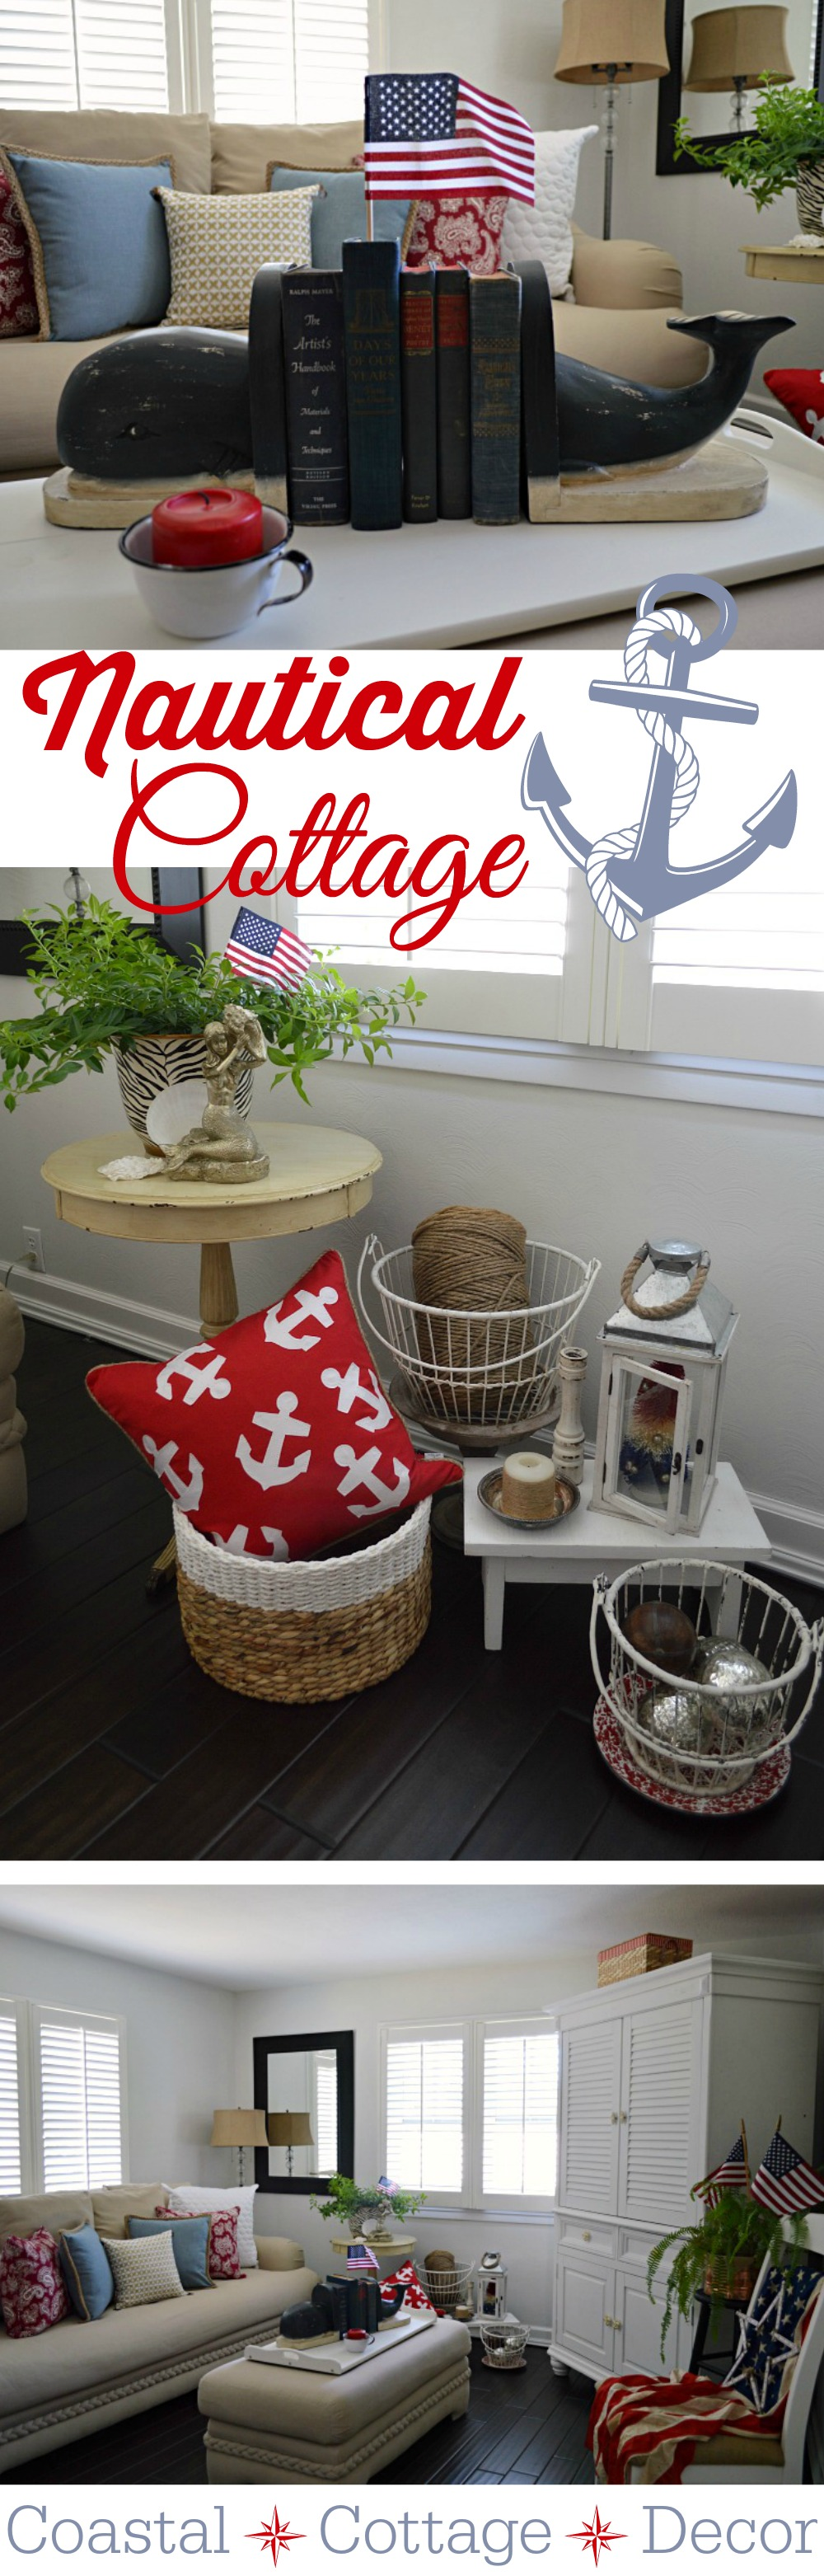 Nautical House Decor Summer Cottage Nautical Home Decorating Fox Hollow Cottage